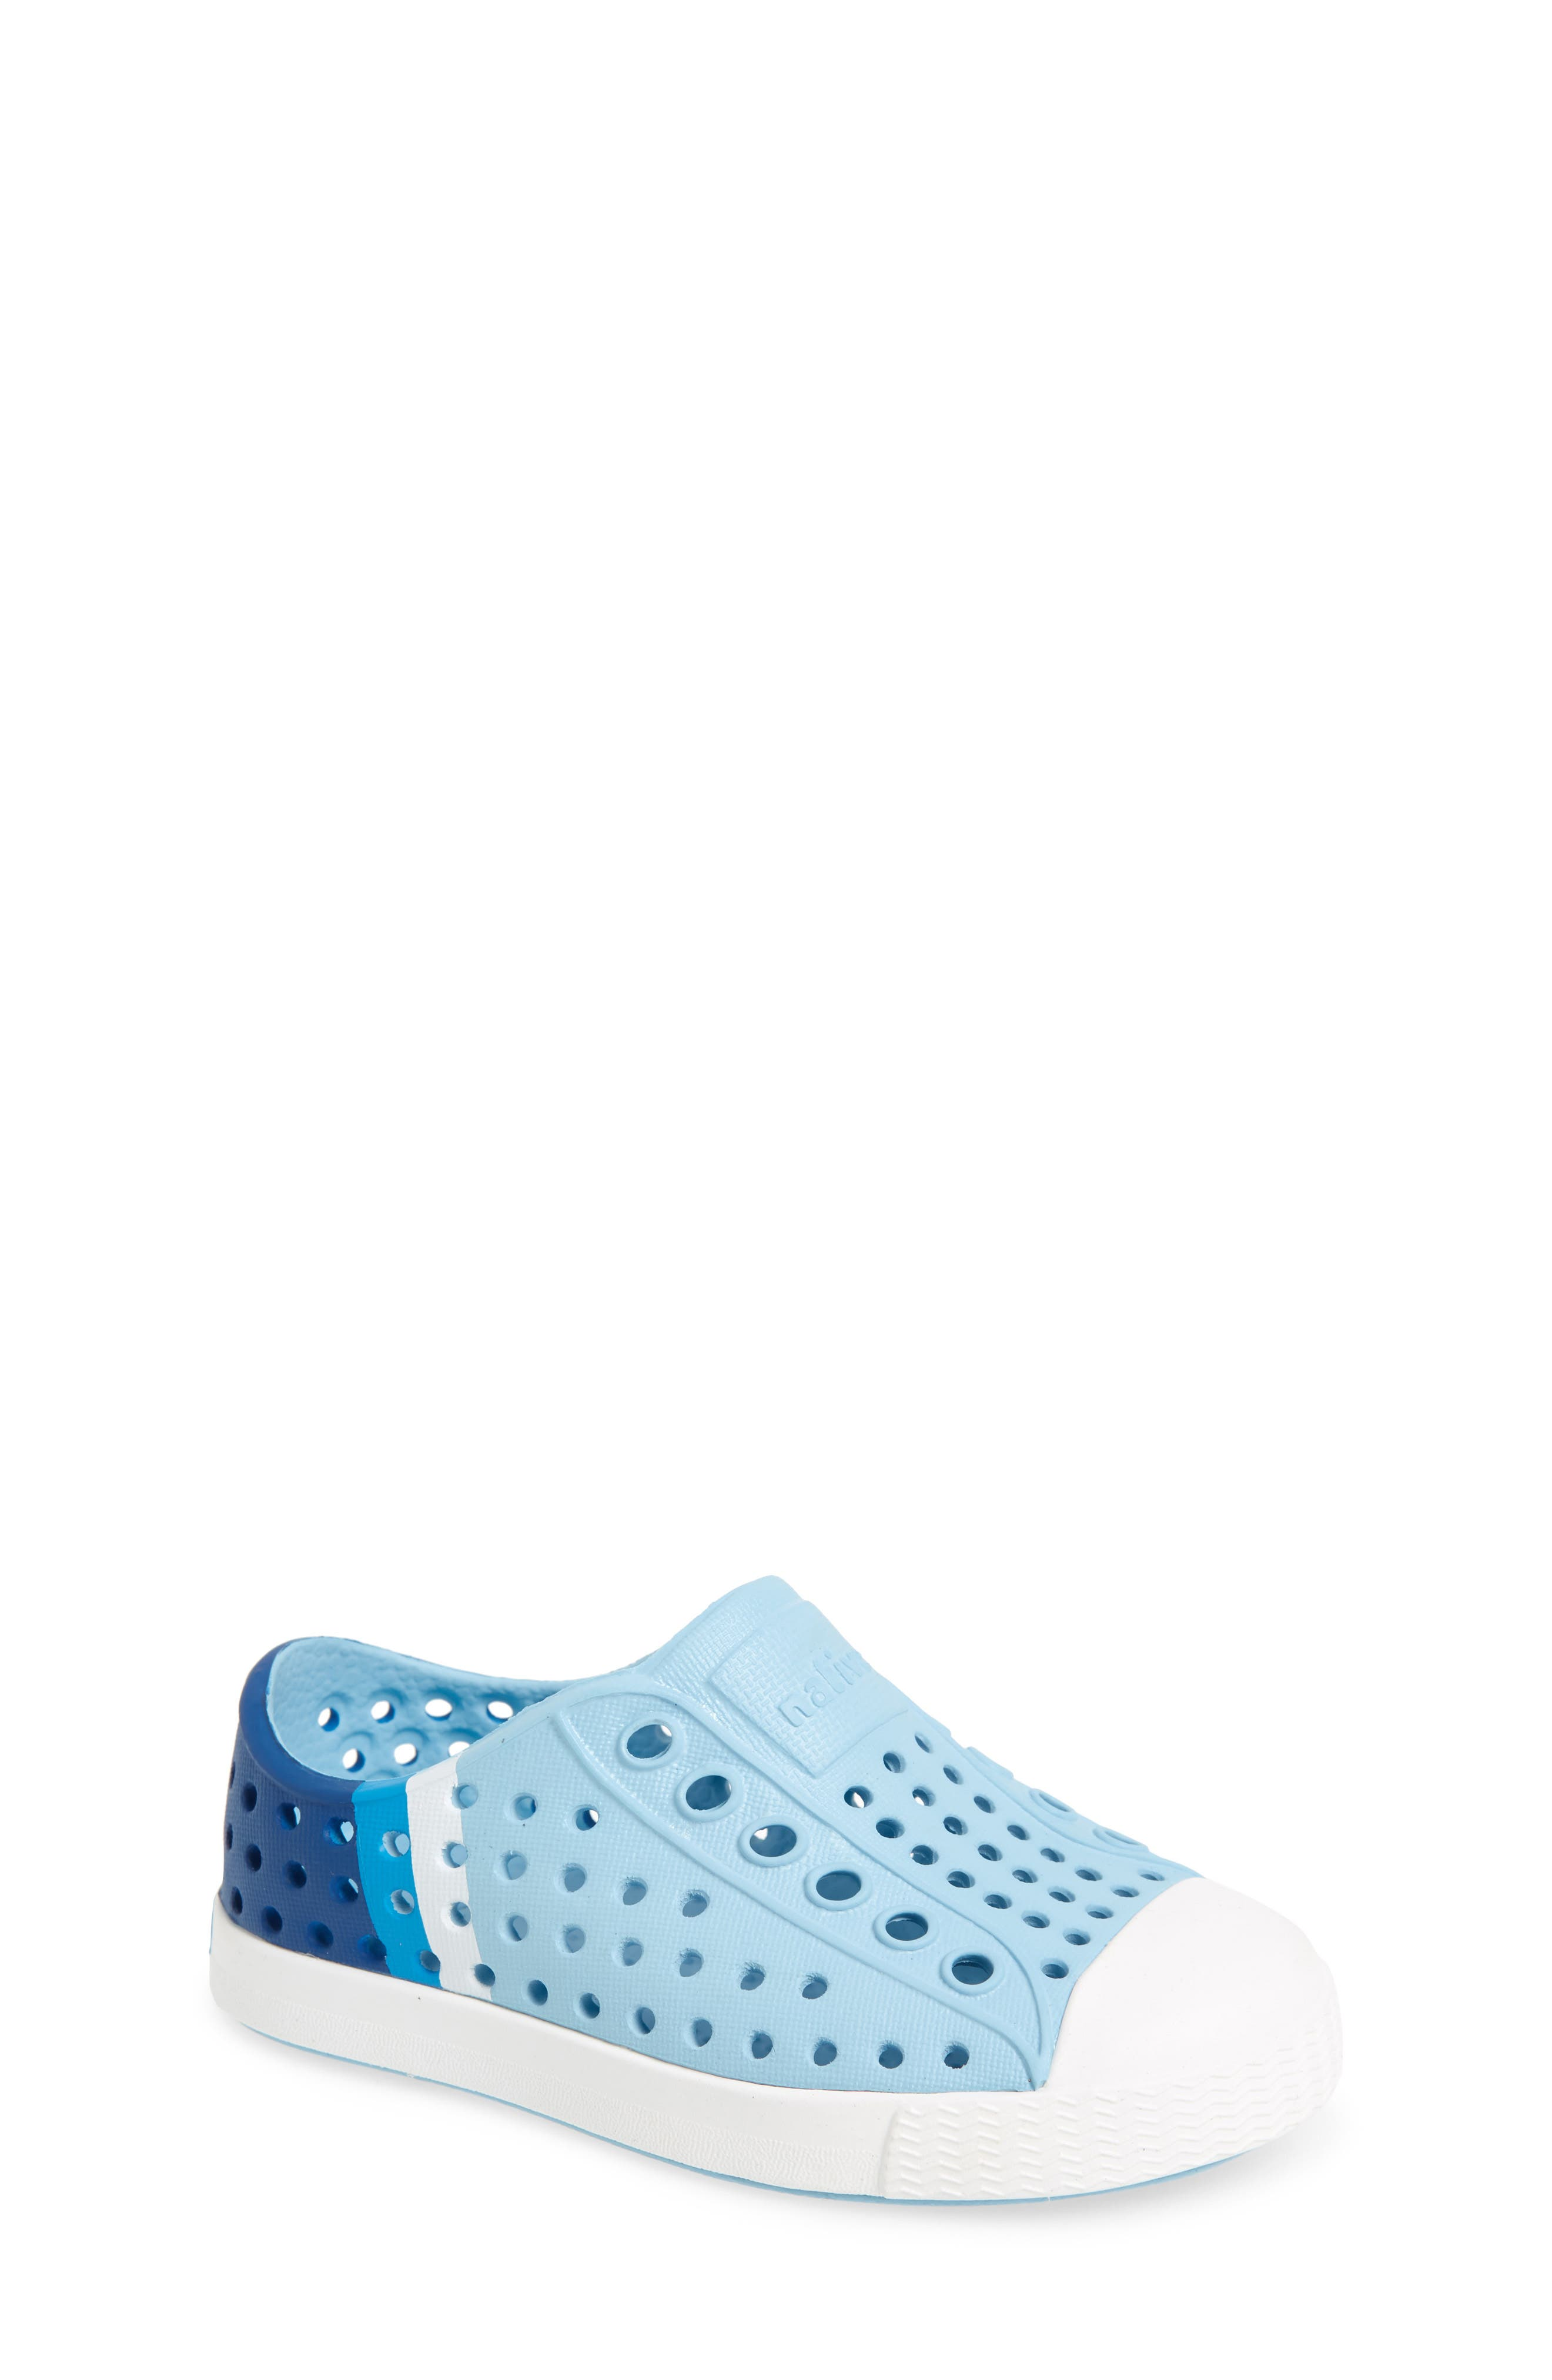 Native Shoes 'Jefferson' Water Friendly Slip-On Sneaker (Baby, Walker, Toddler, Little Kid & Big Kid)